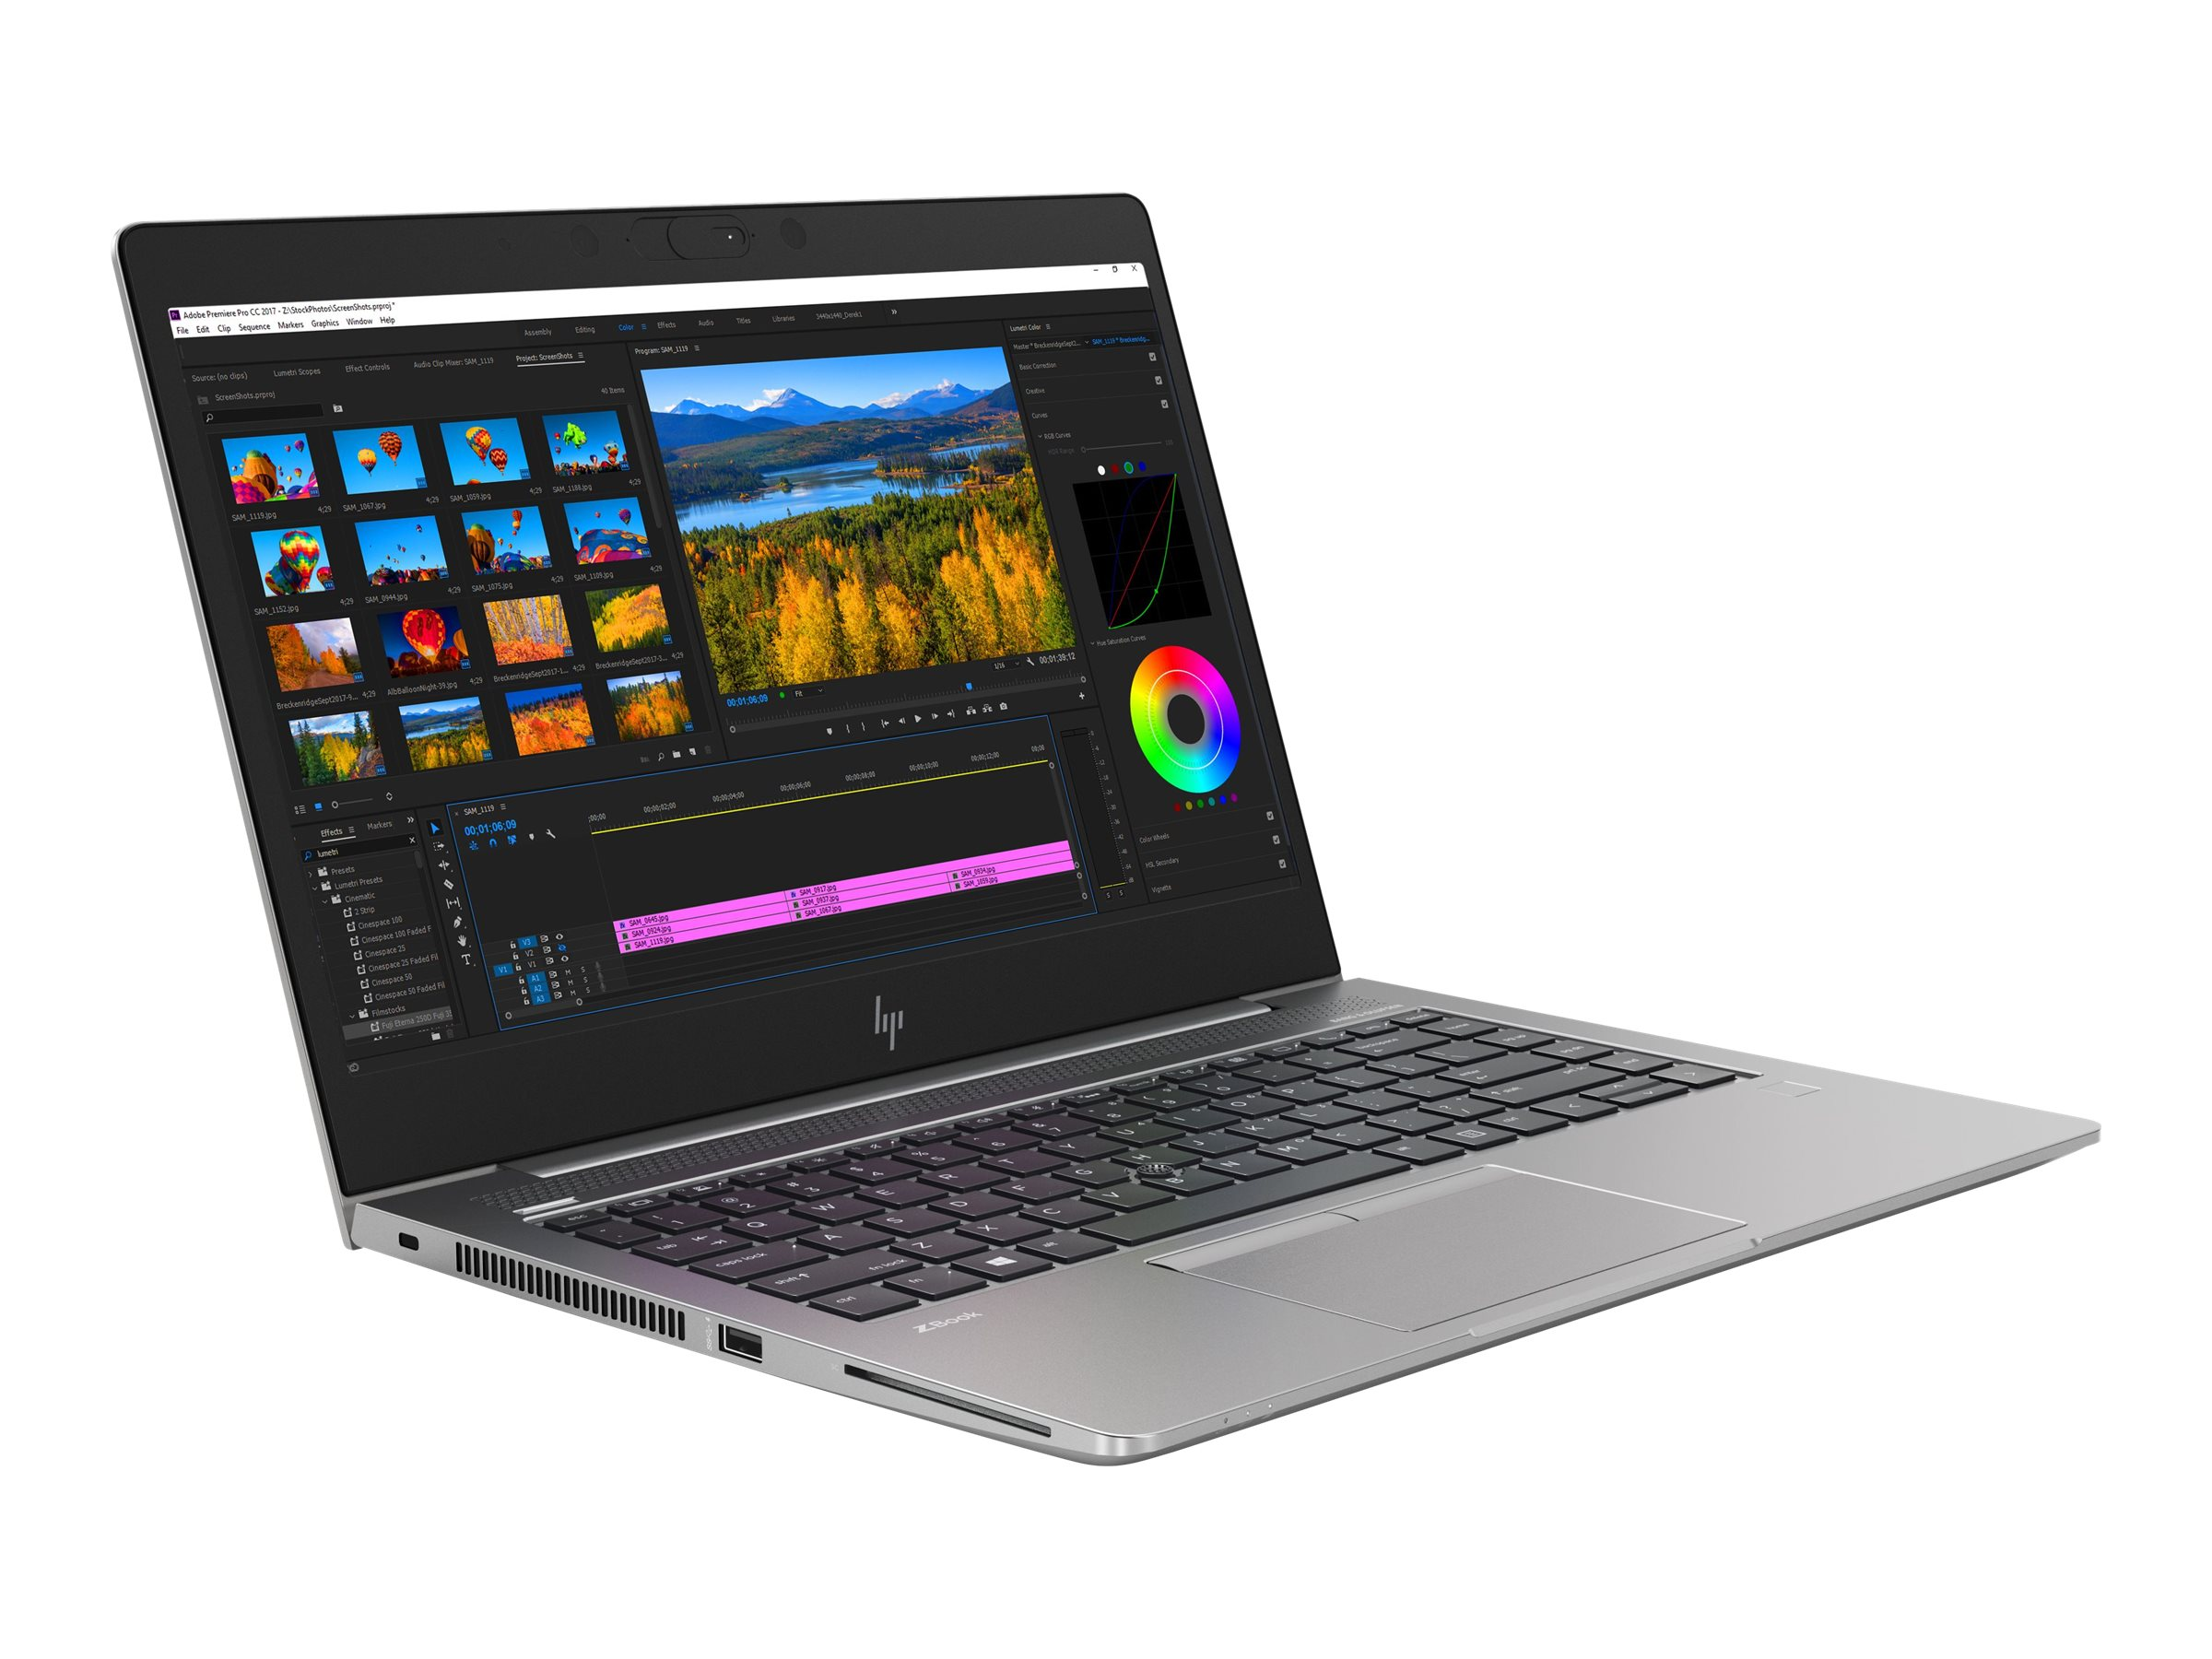 HP ZBook 14u G5 Mobile Workstation - Core i7 8550U / 1.8 GHz - Win 10 Pro 64-Bit - 8 GB RAM - 256 GB SSD NVMe - 35.6 cm (14